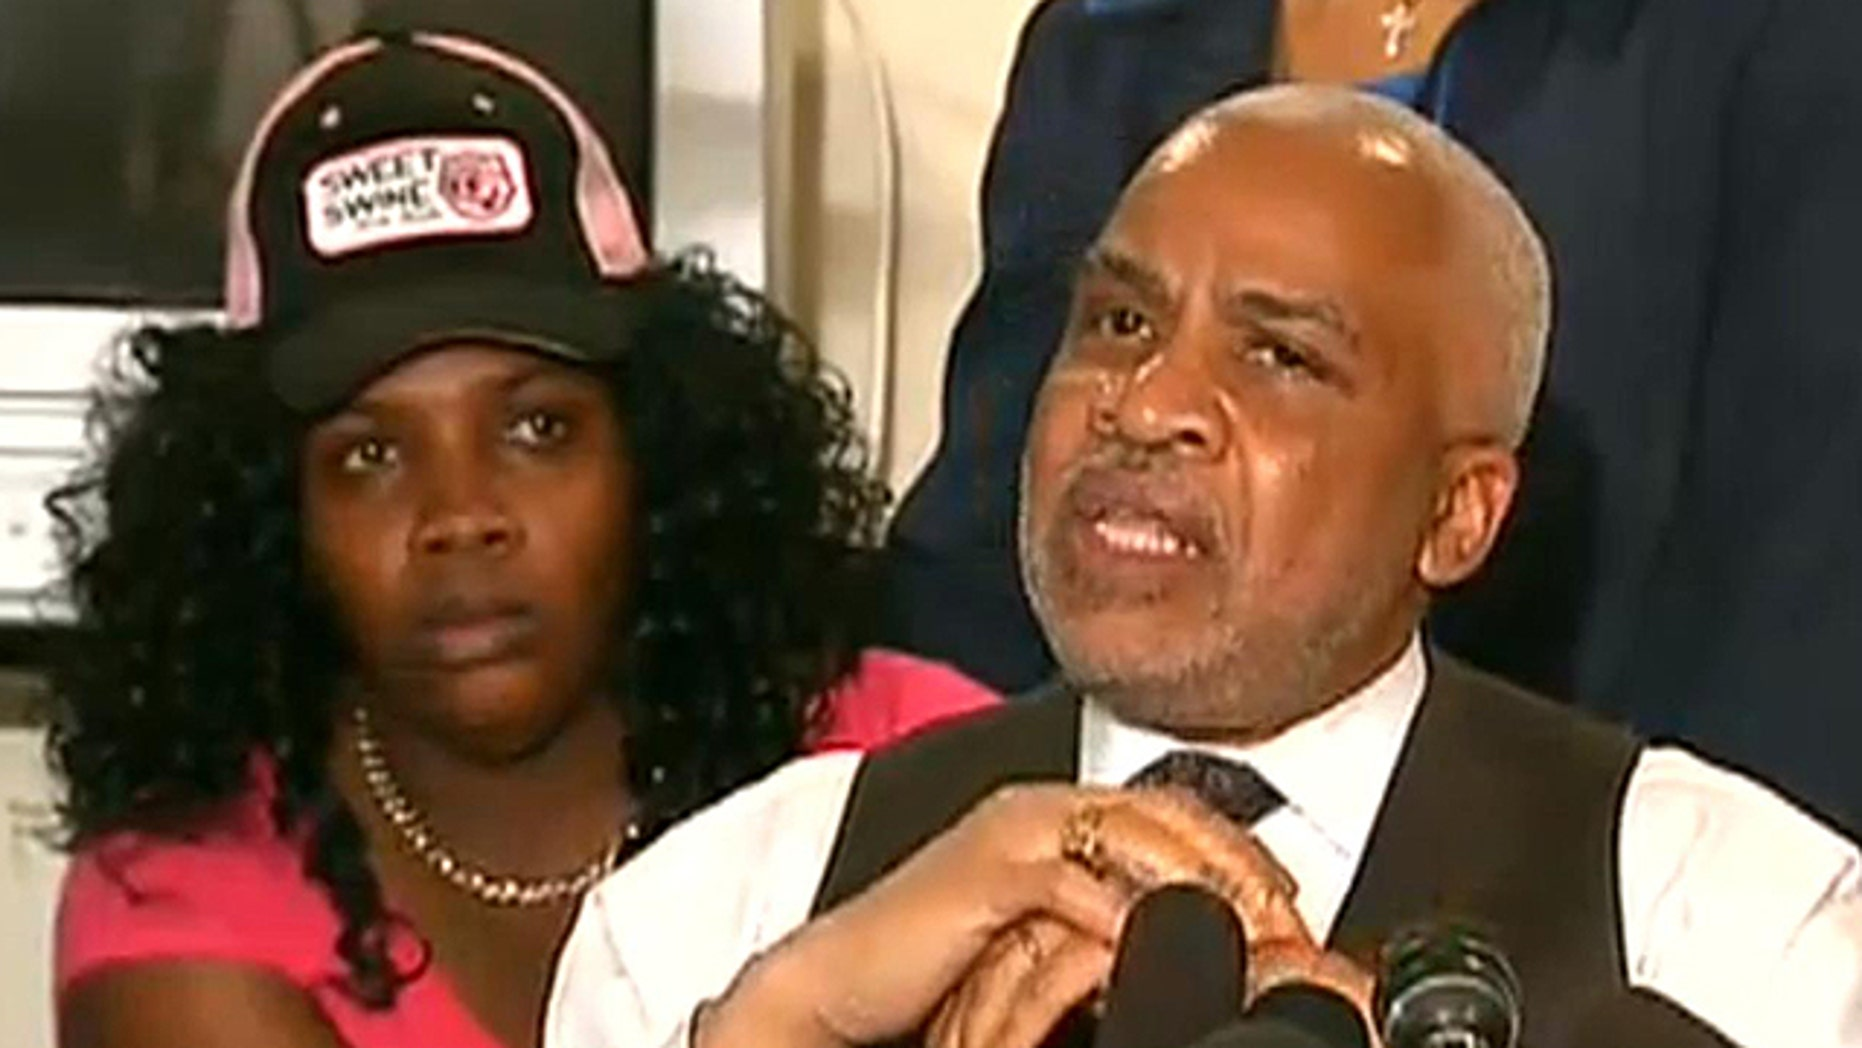 """""""I have not seen the ticket, nor do I want to see the ticket,"""" said attorney Edward Smith, right, as Marlinde Wilson stood behind him."""